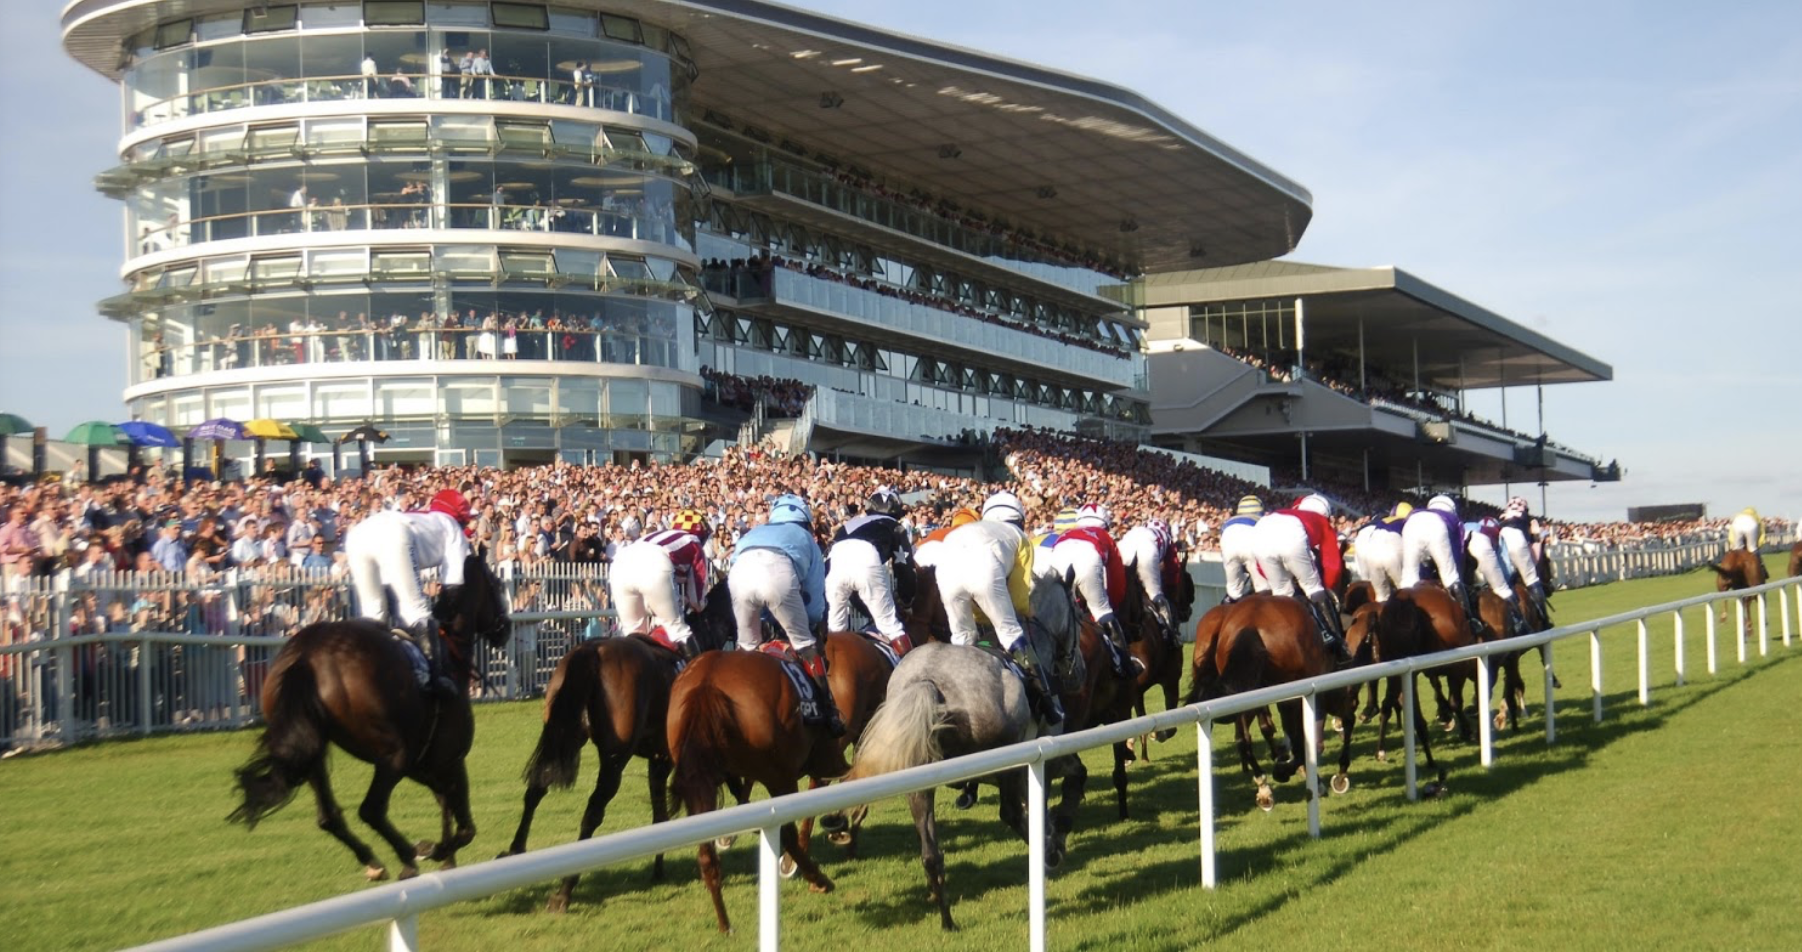 Stag Do Ideas Ireland - Galway Races